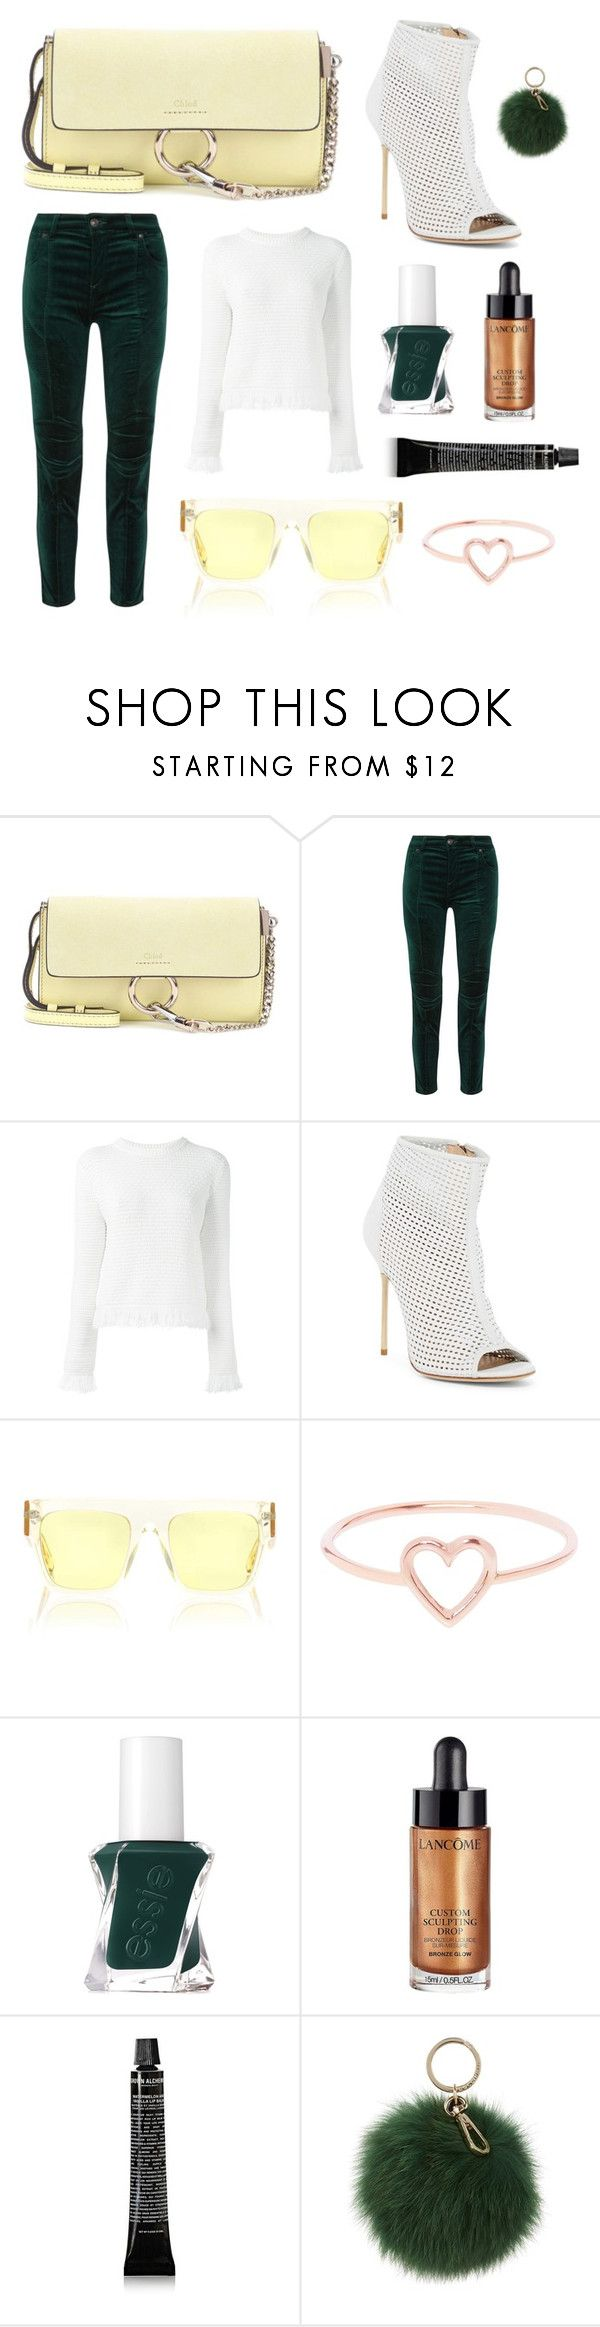 """Hero Piece"" by cathy-ranjan ❤ liked on Polyvore featuring Chloé, Pierre Balmain, Proenza Schouler, Jerome C. Rousseau, STELLA McCARTNEY, Love Is, Essie, Lancôme and Coccinelle"